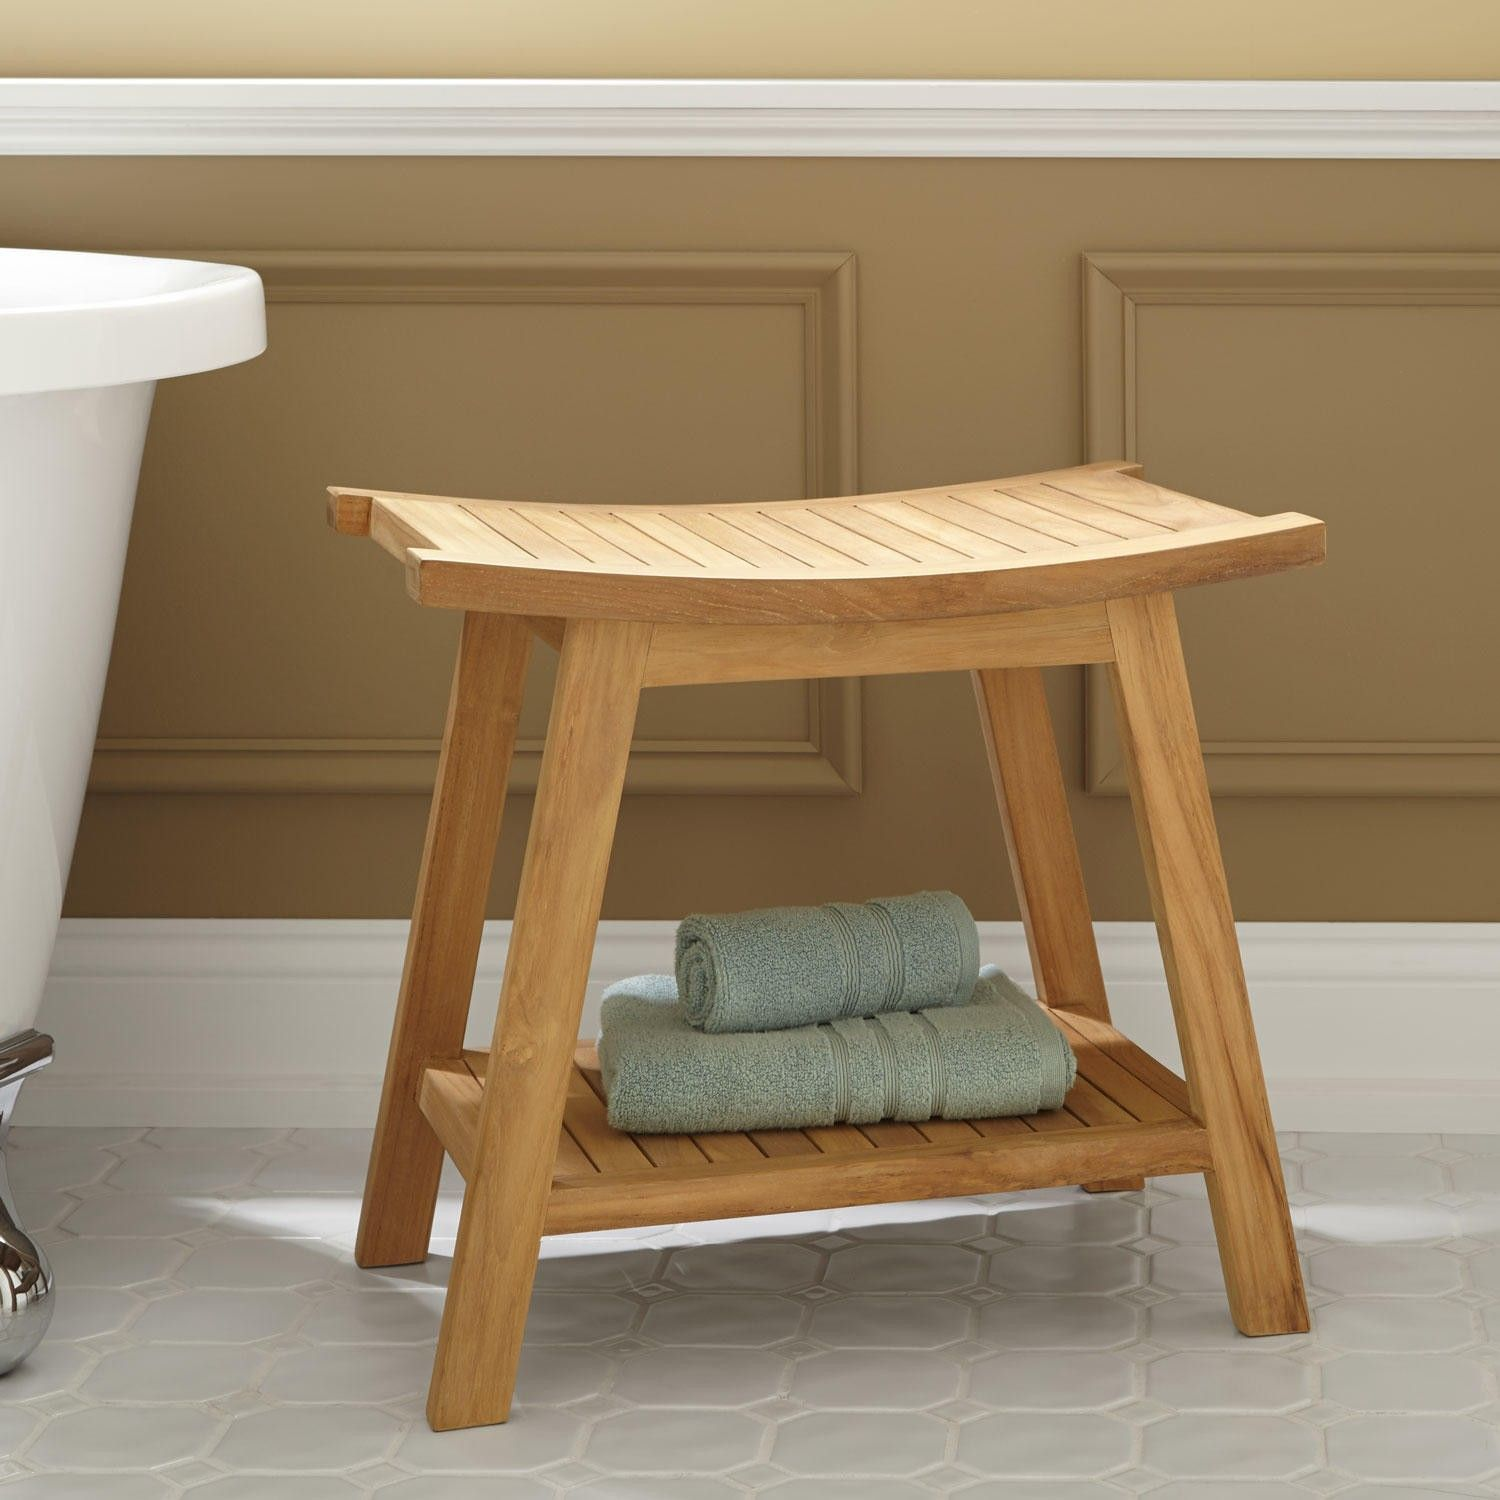 17 Best images about Stools on Pinterest   Bathroom bench  Teak and Steam  room. 17 Best images about Stools on Pinterest   Bathroom bench  Teak